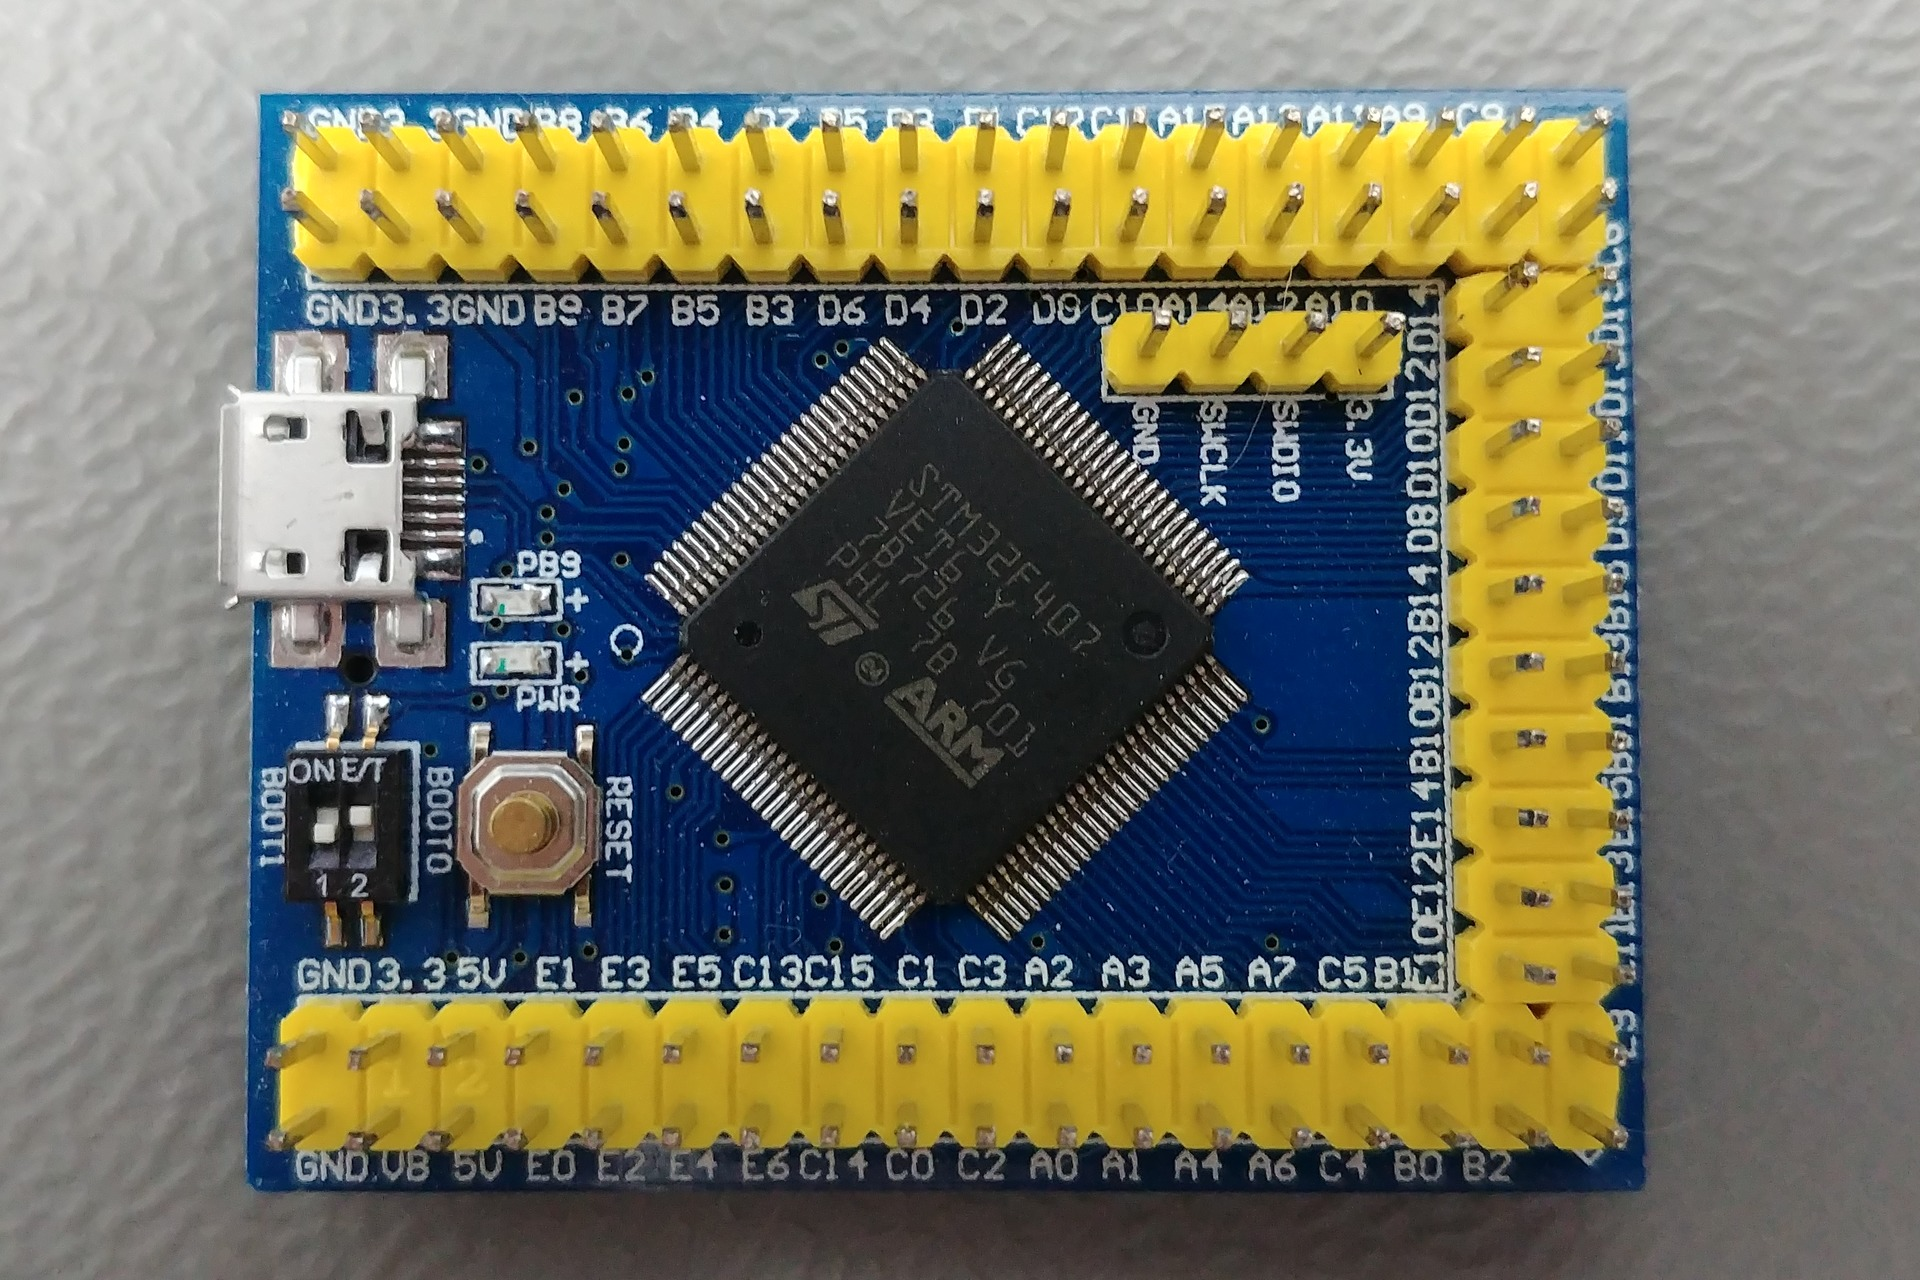 vcc-gnd.com STM32F407VET6 mini: Top view